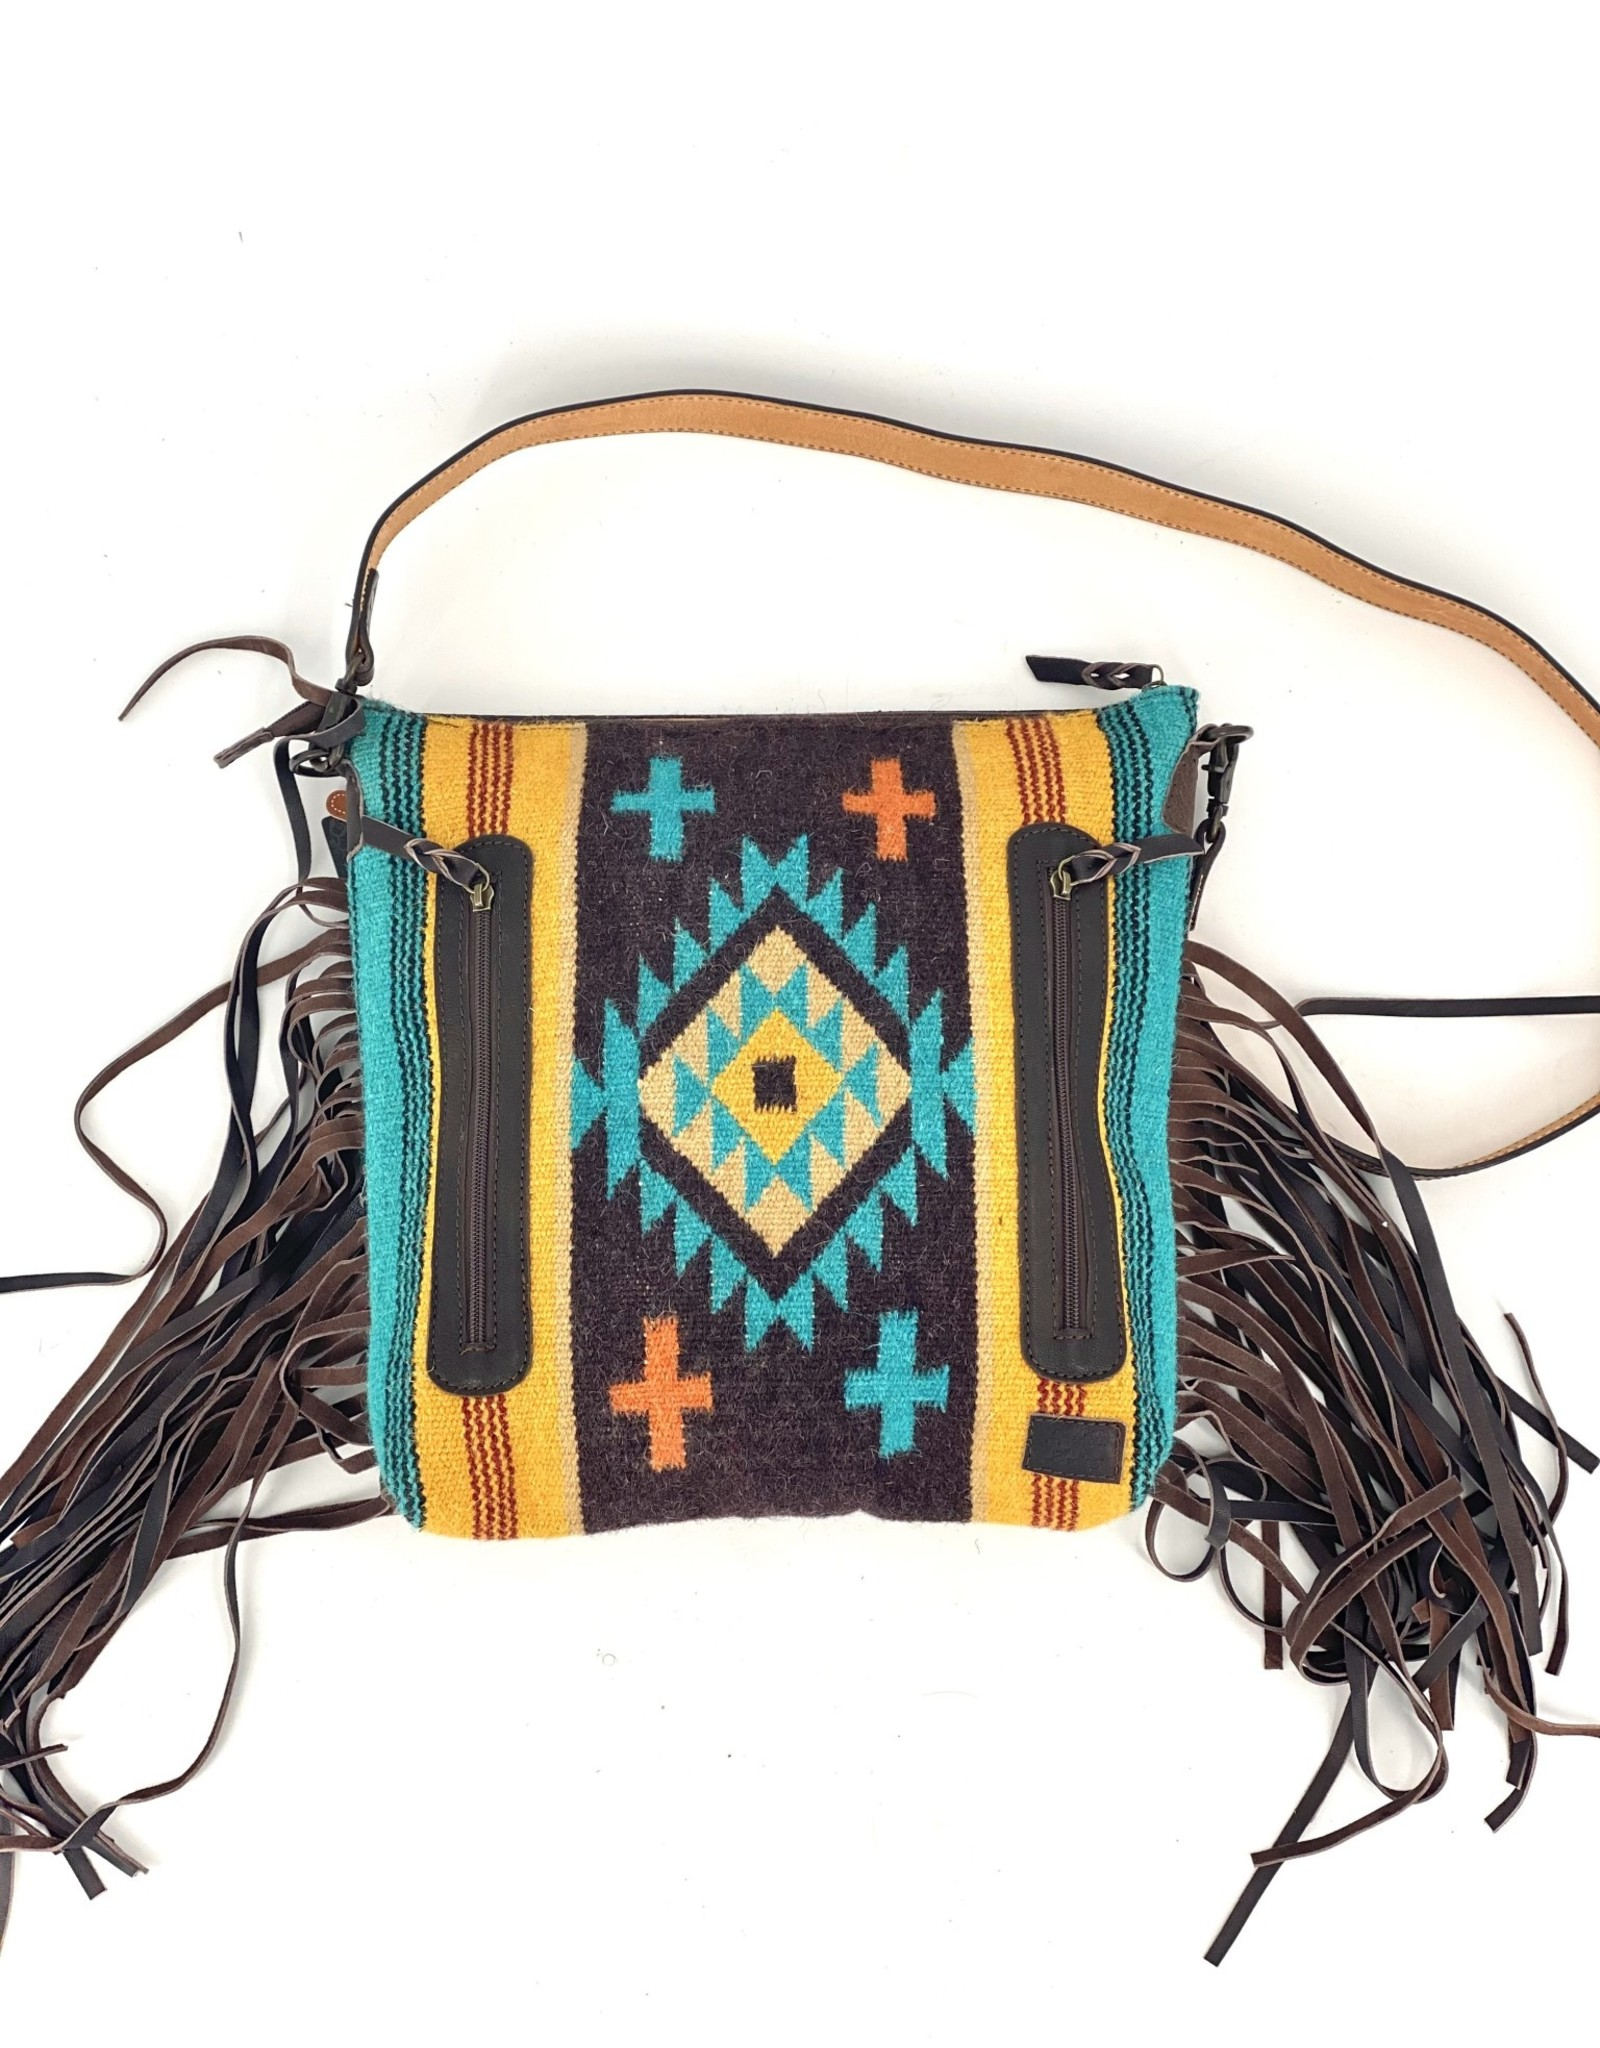 "PURSE TOTE XL AD AZTEC BRN/TEAL/YELLOW TOOLED CROSSBODY 14X15X4"" CONCEALED CARRY CC"